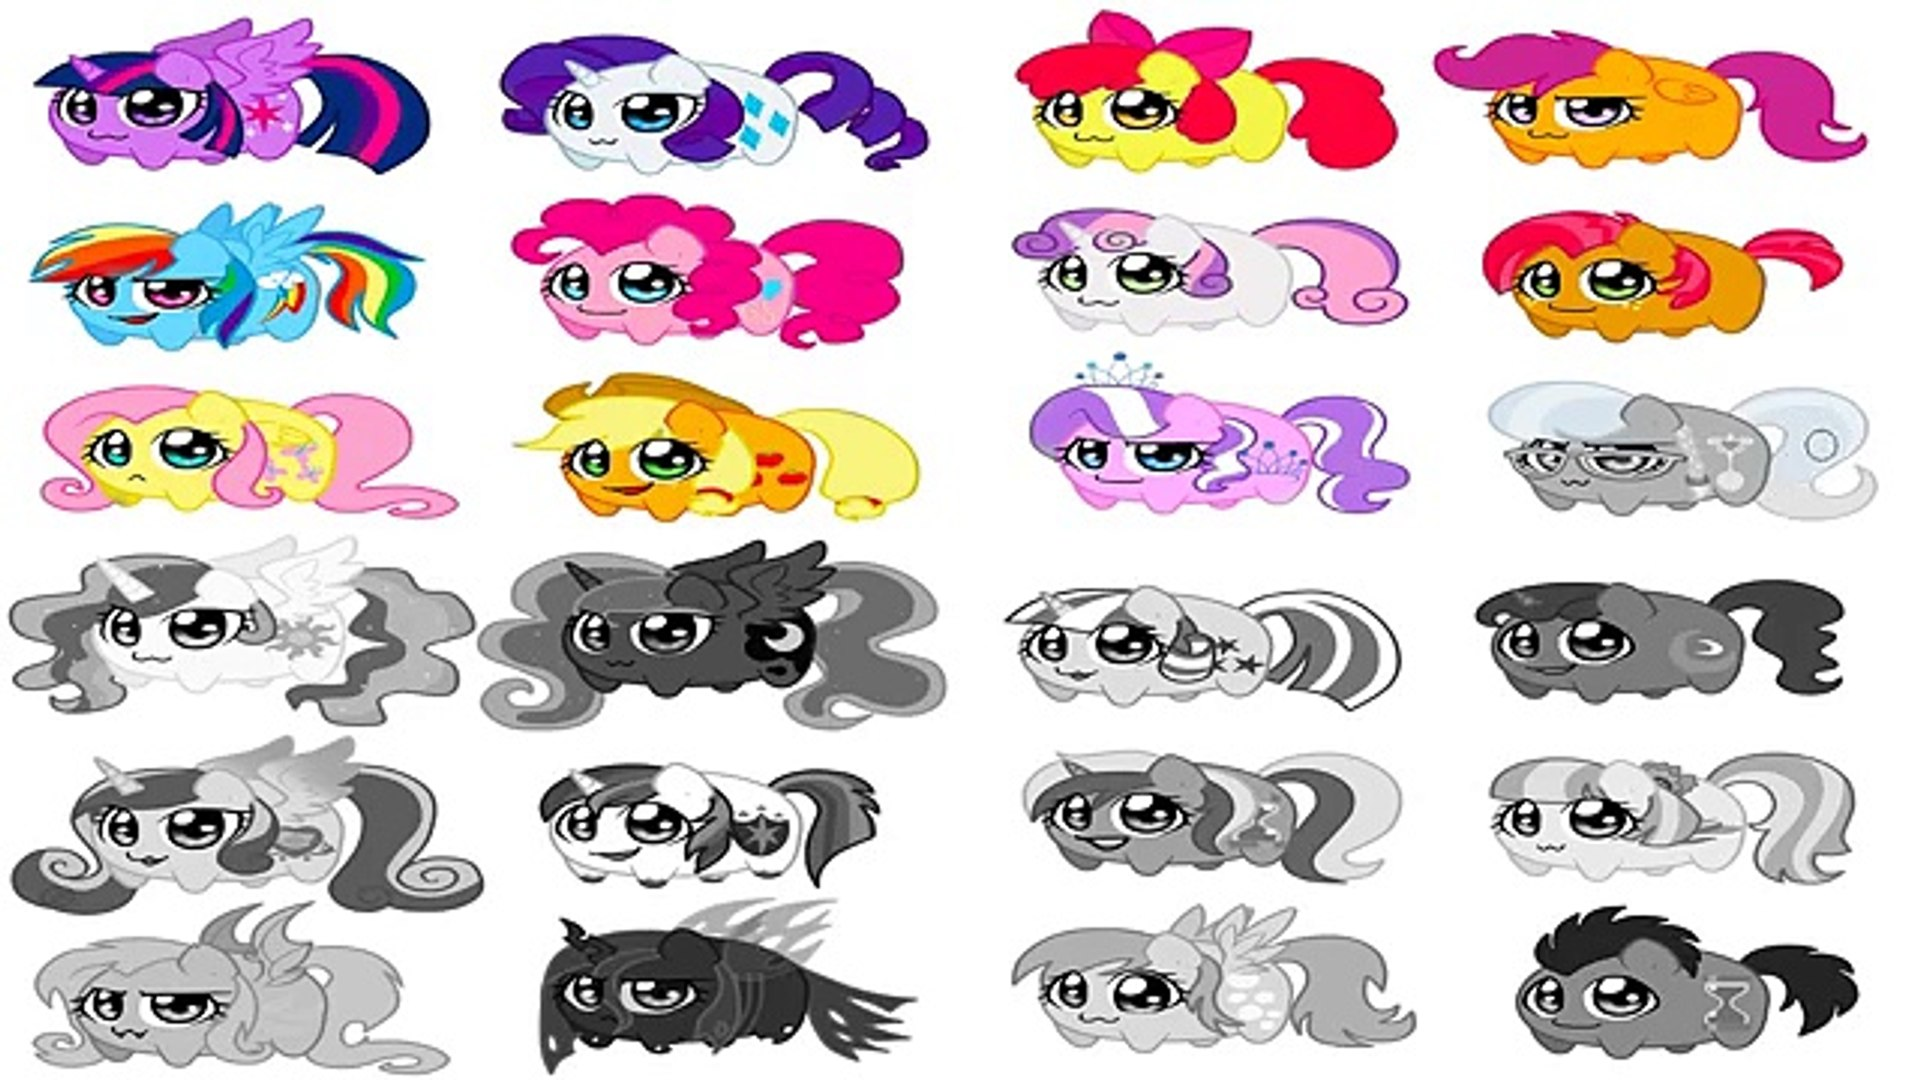 My Little Pony Coloring Book Chibi Ponies Coloring Page All Ponies Mlp Coloring Videos For Kids Ž±ç‰‡ Dailymotion